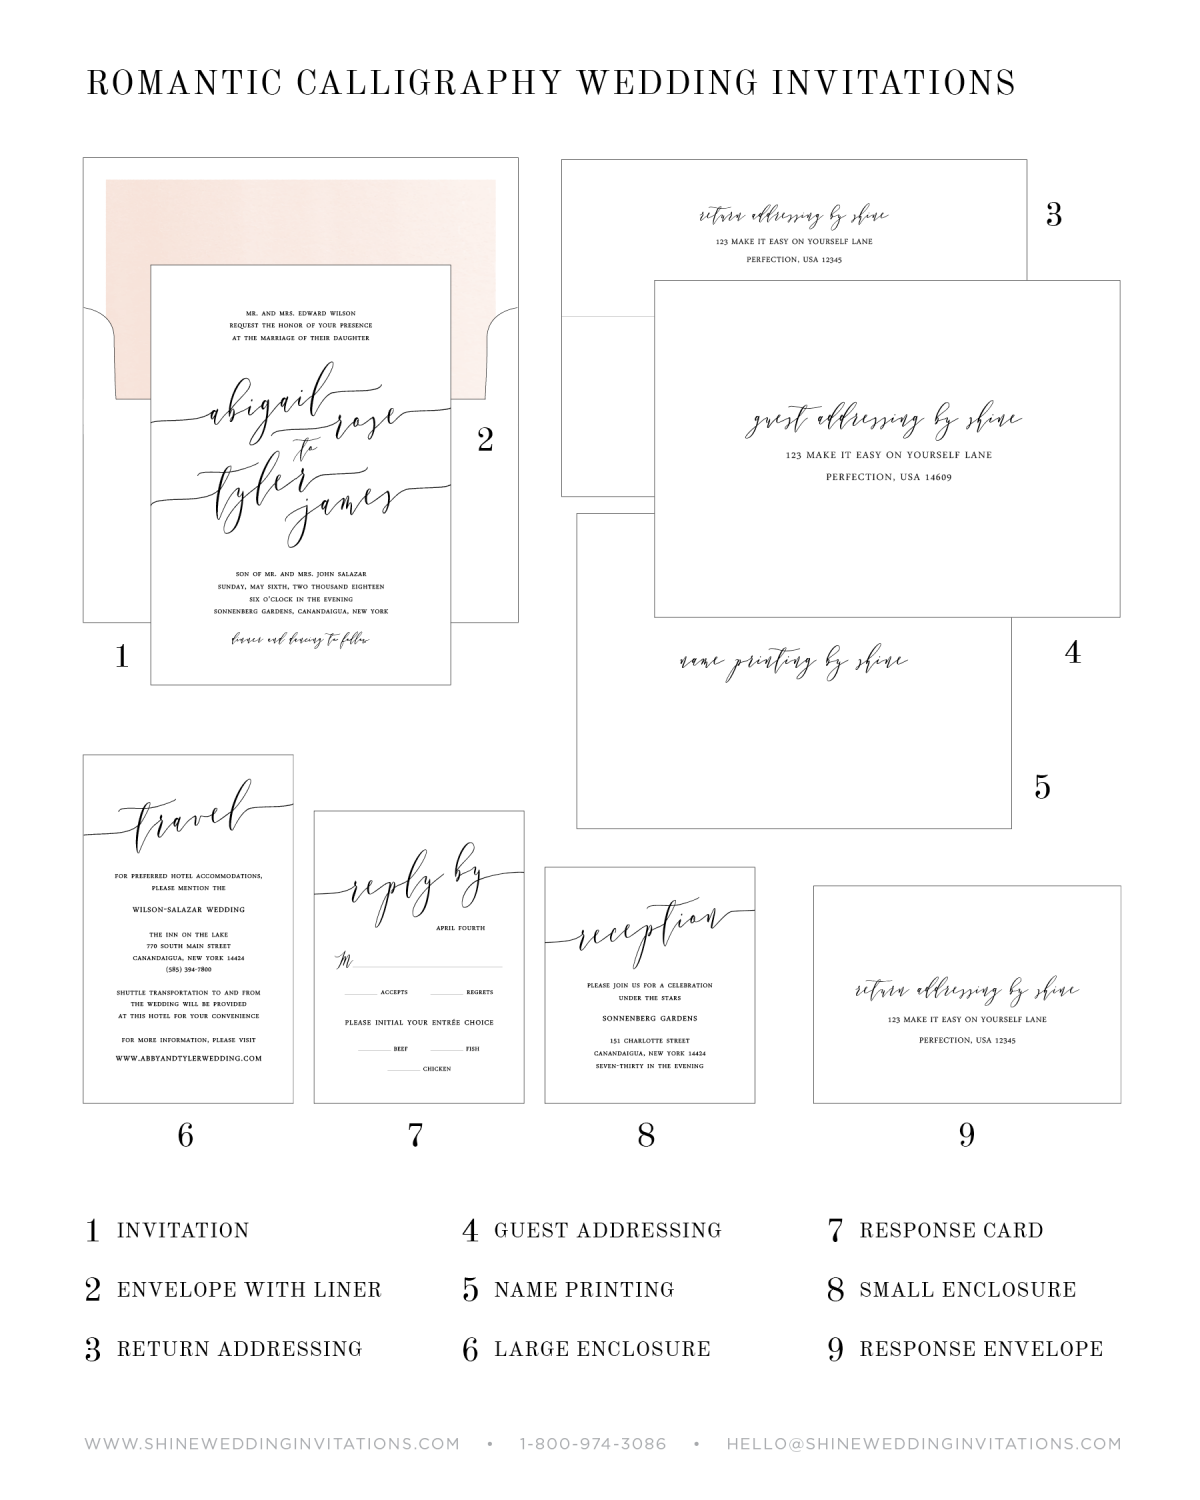 Letterpress Wedding Invitation Components Chart